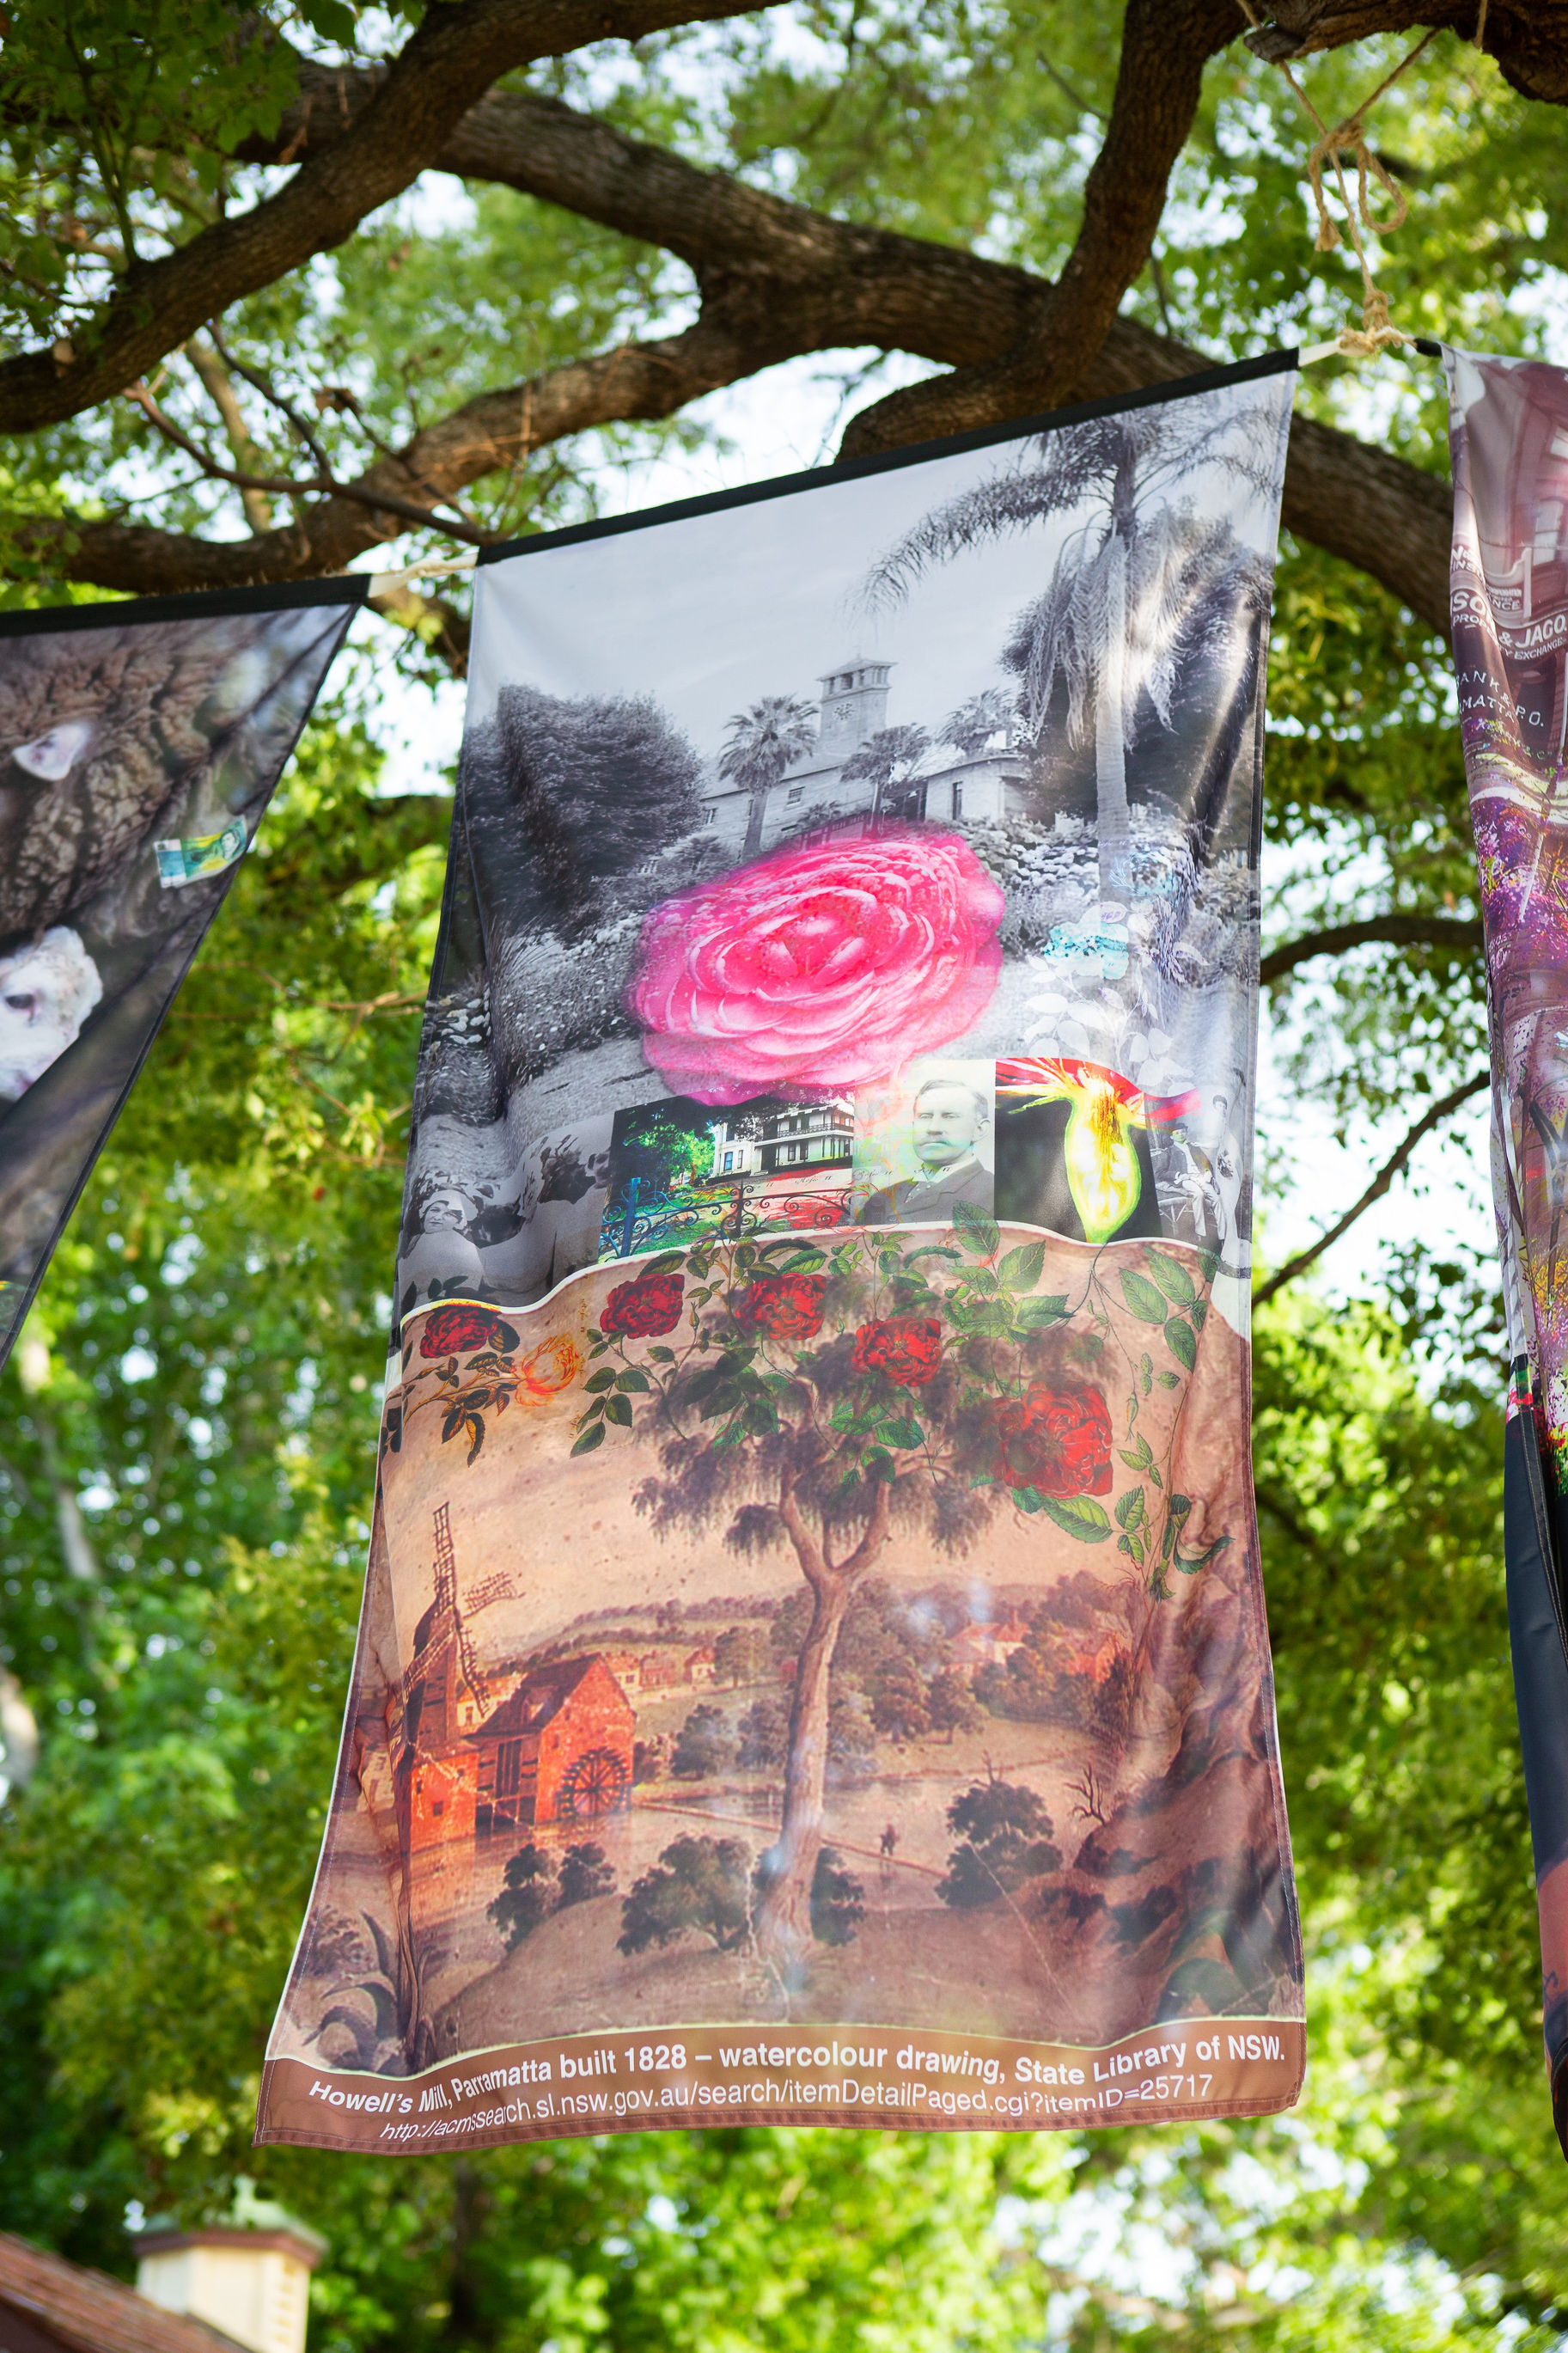 Tree Curtain featuring Prince William Camellia japonica  (1 of 56 forms bred) by Silas Sheather in Parramatta